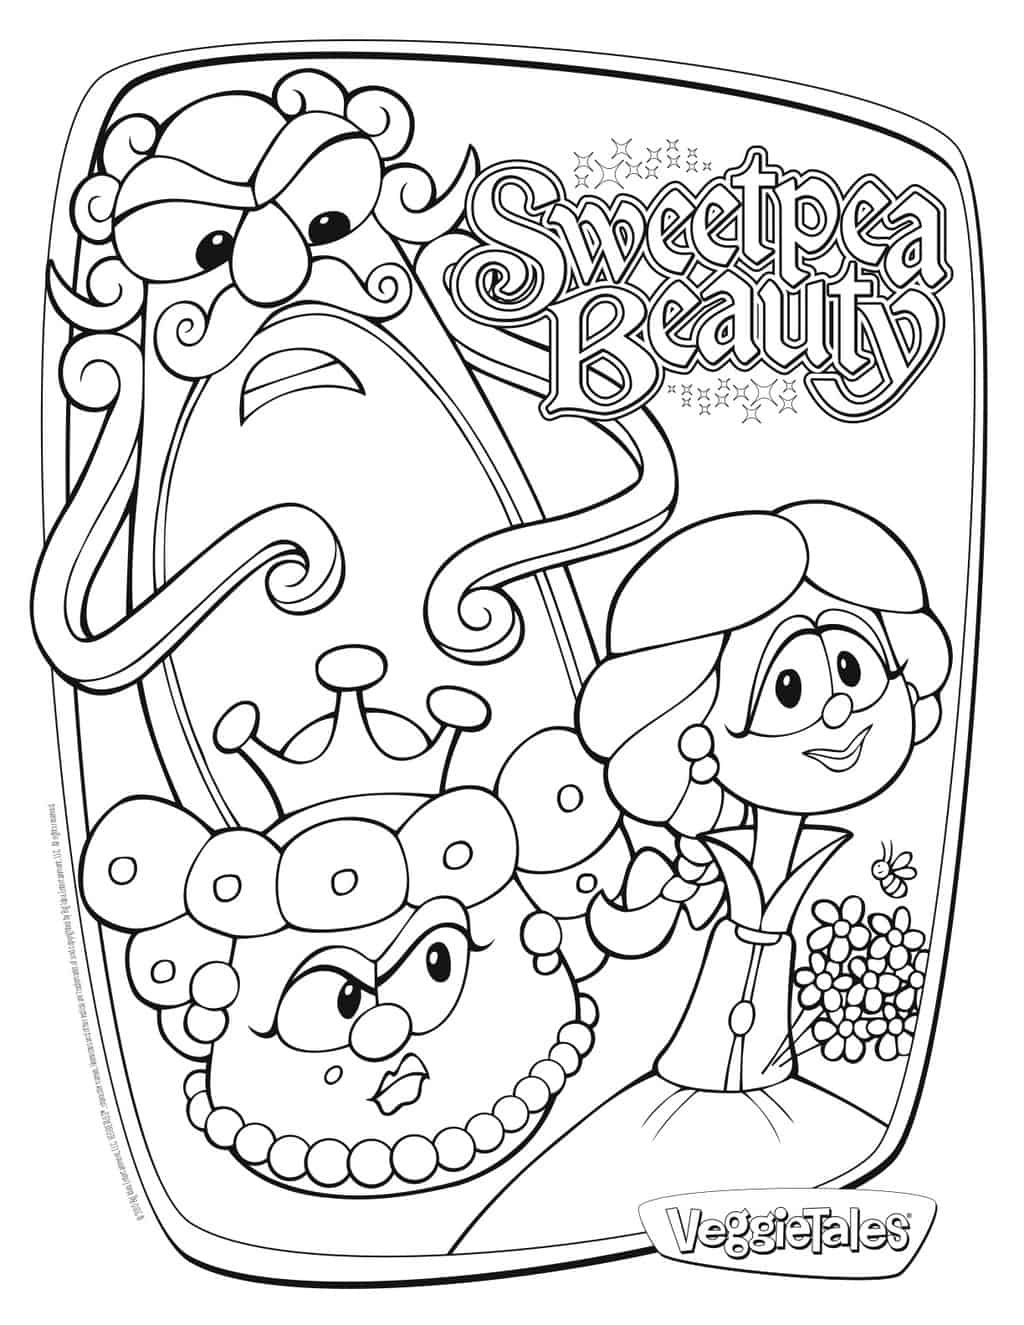 veggies tales coloring pages - photo#34